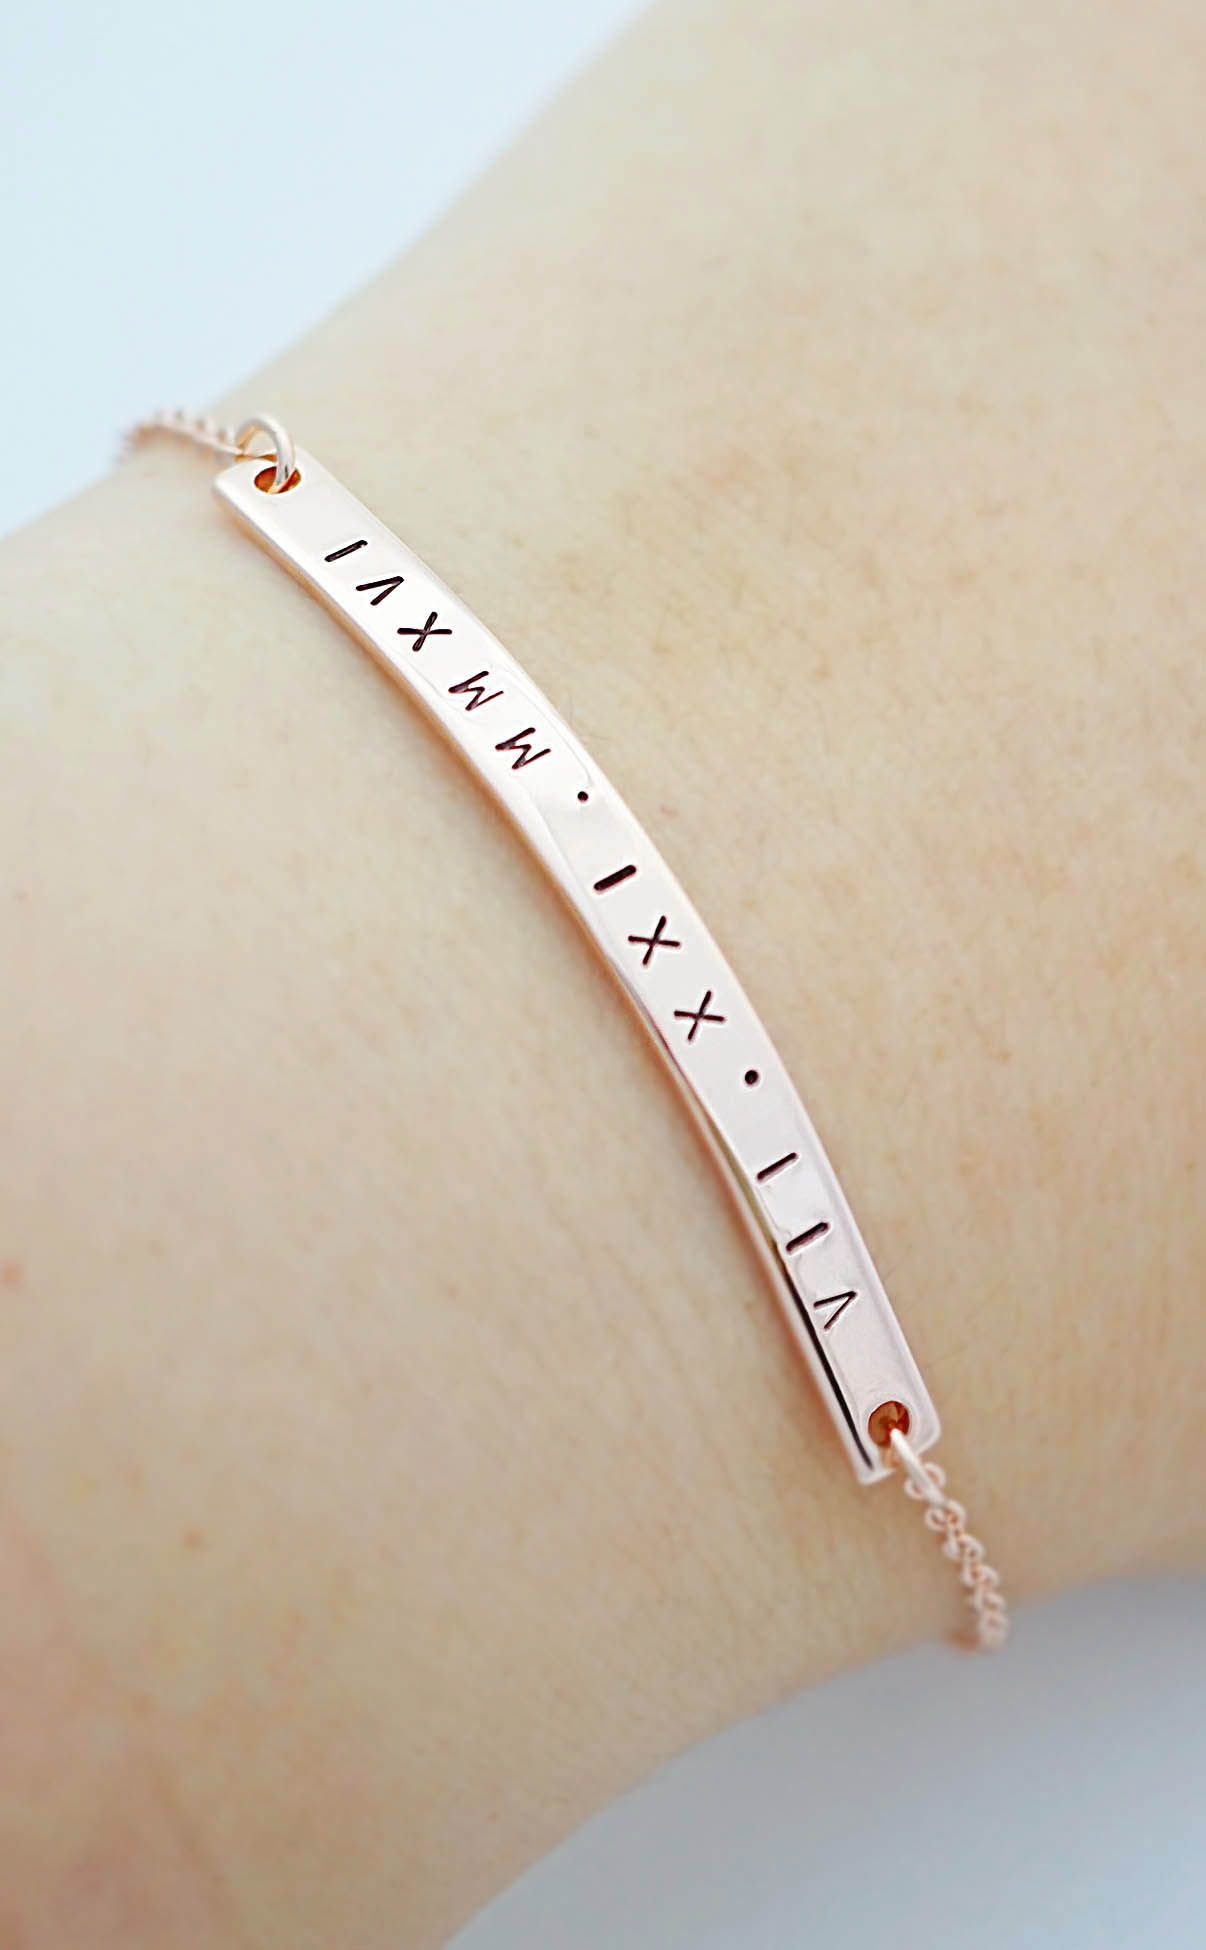 personalized bracelet inspirational cuff woman jewelry mantra quote item positive women engraved name initial message any custom language bangle for